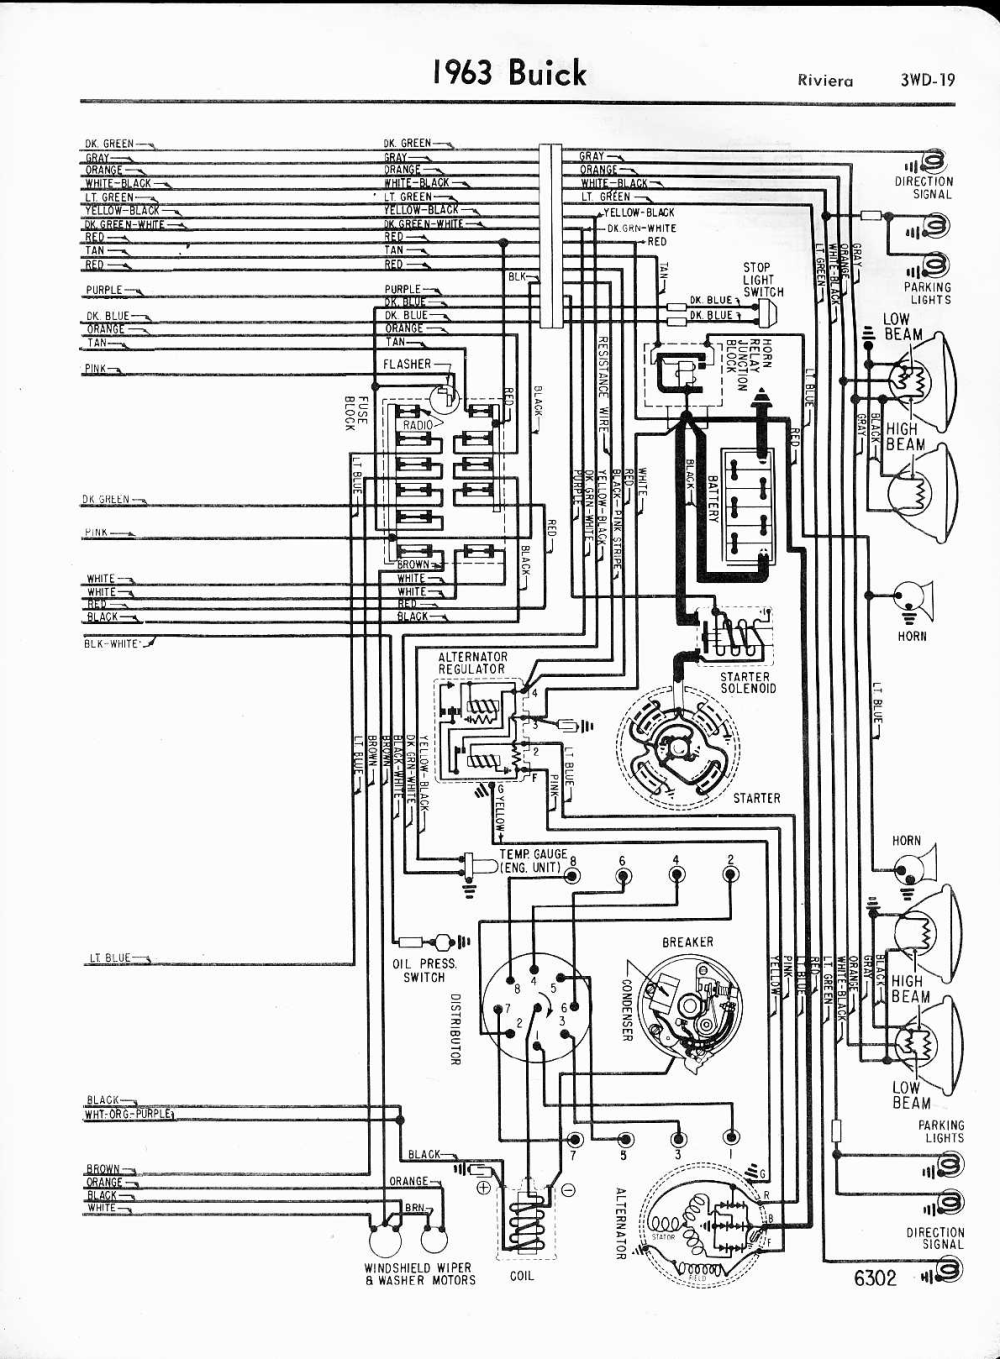 medium resolution of buick riviera 1963 1965 misc documents wiring diagrams pdf 1995 buick lesabre wiring diagram 65 buick wiring diagram